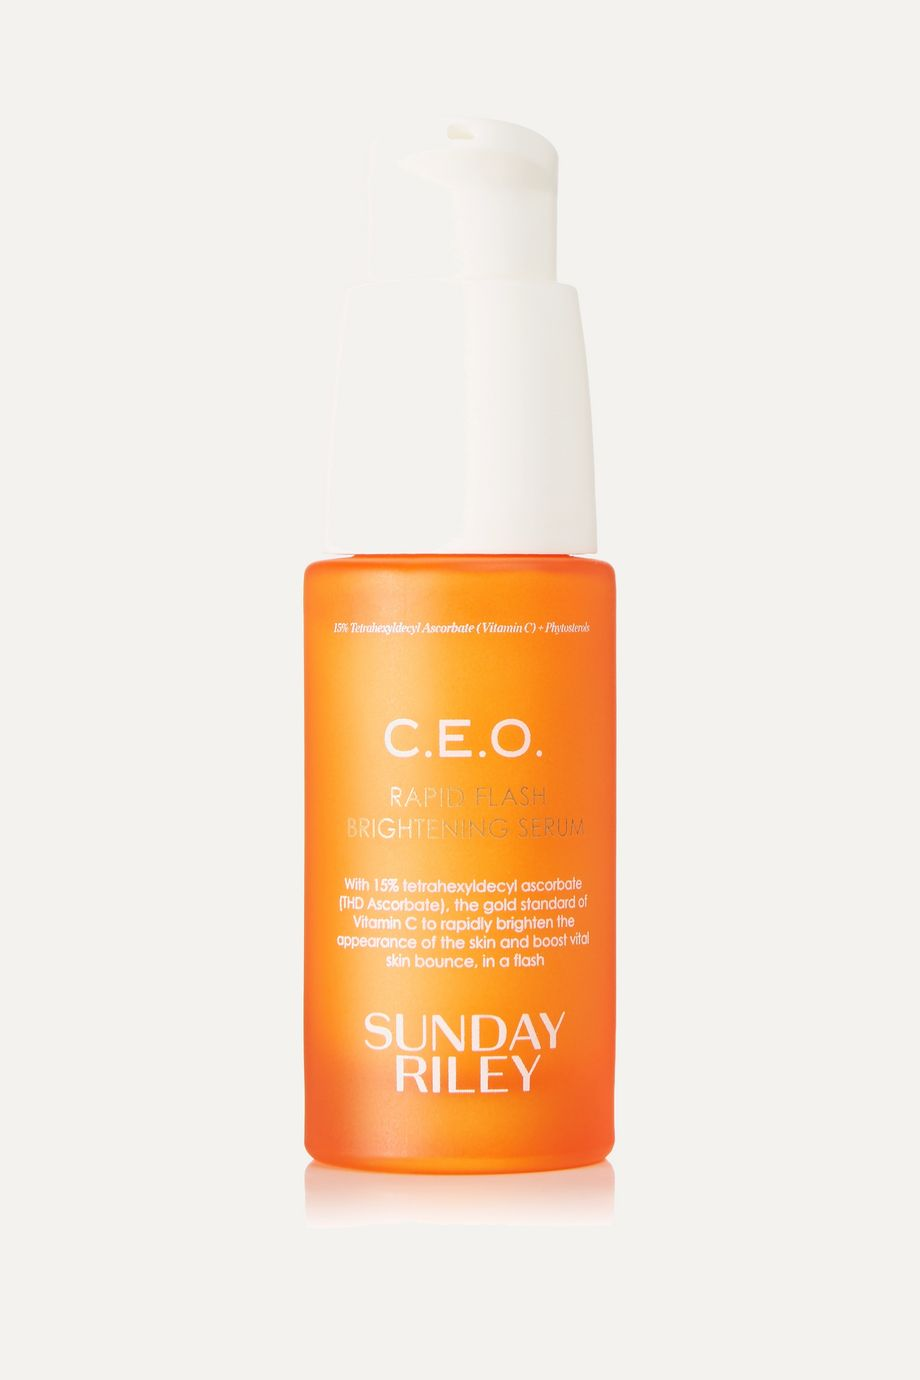 Sunday Riley C.E.O. Rapid Flash Brightening Serum, 30ml